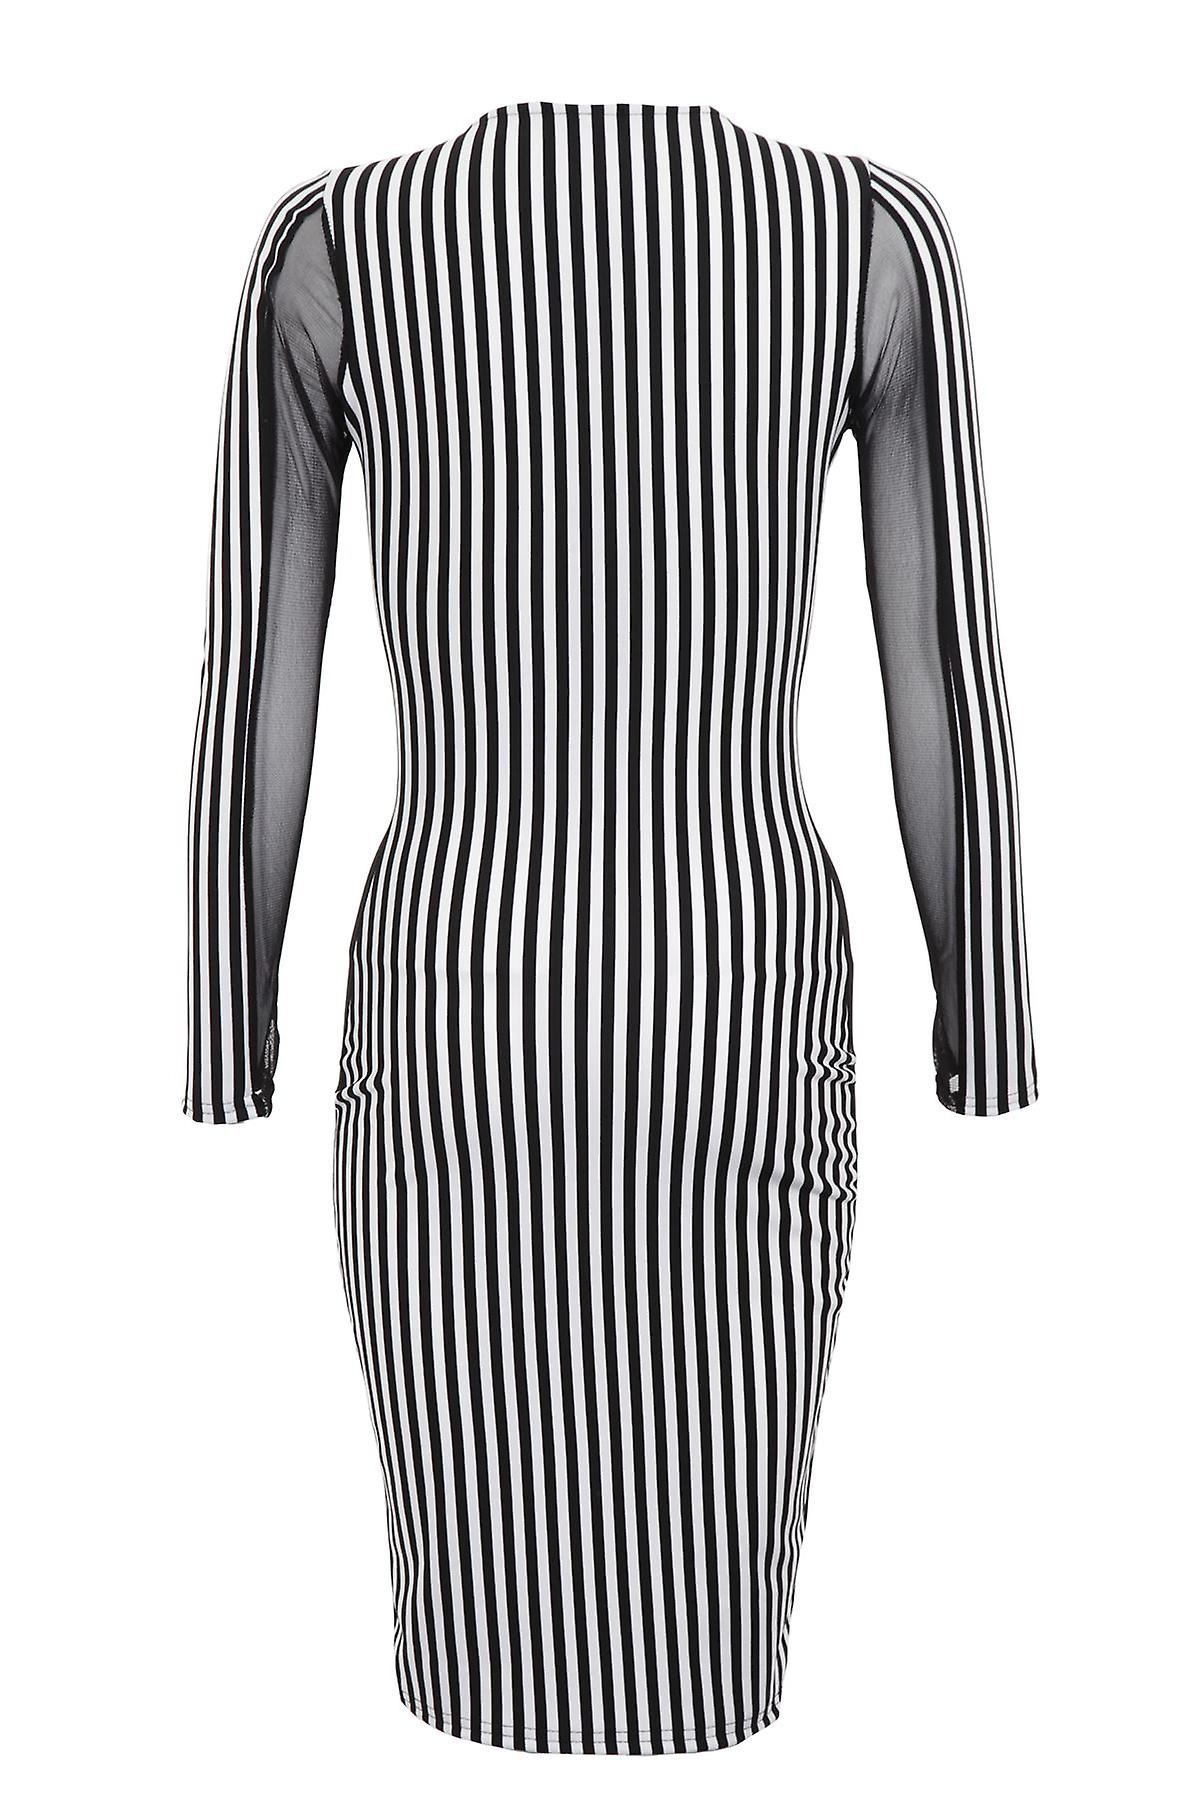 Ladies Black White Stripe Side Mesh Dress Slimming Effect Womens Dress